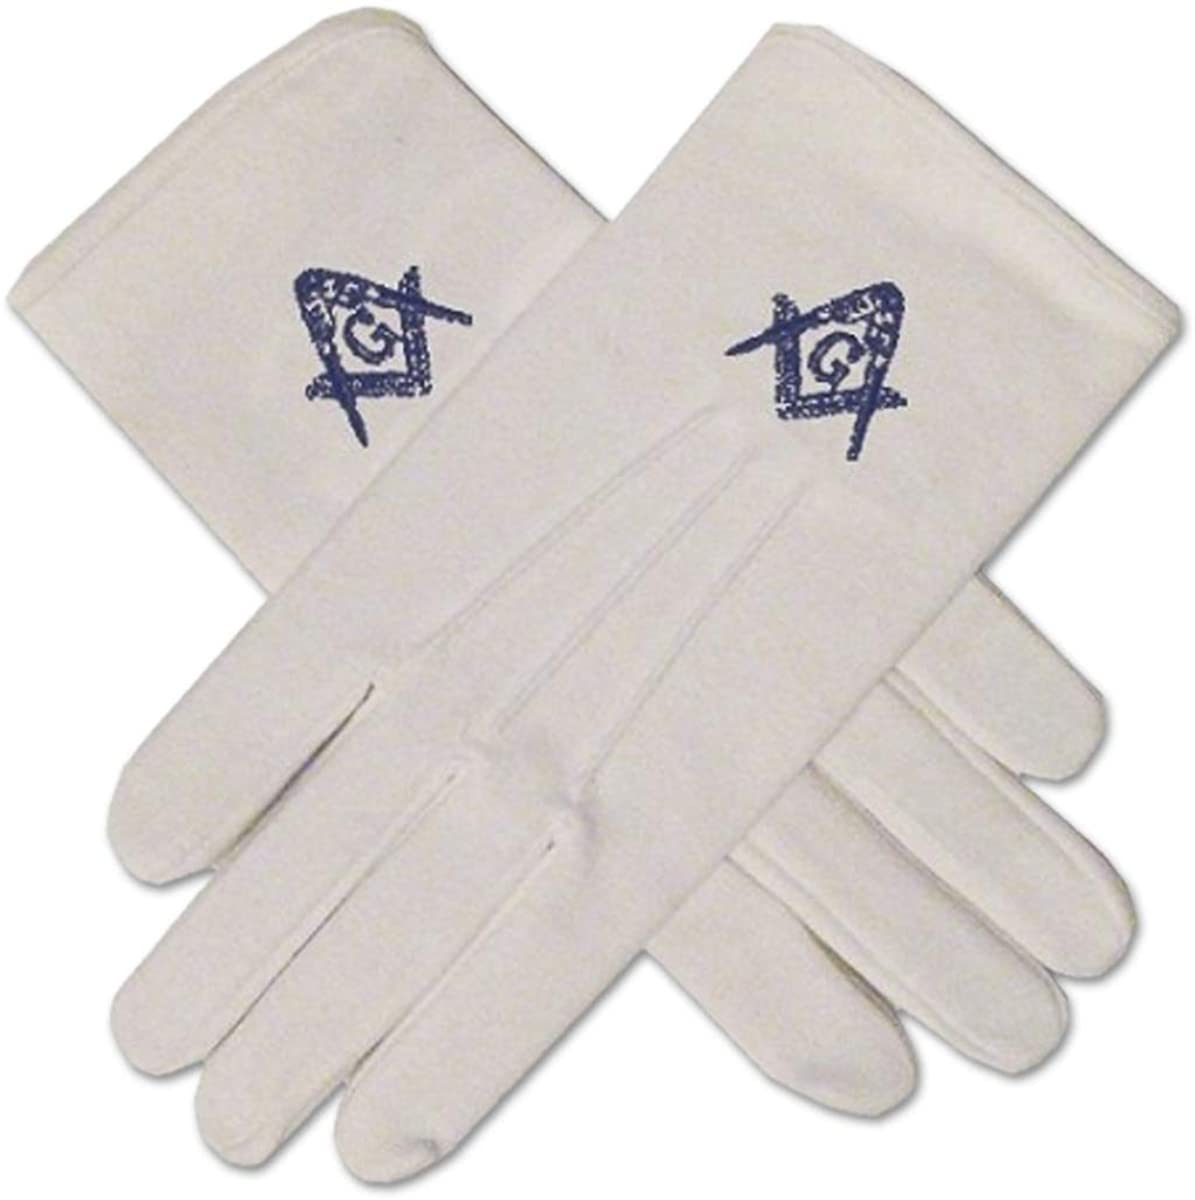 Masonic Embroidered Cotton Gloves